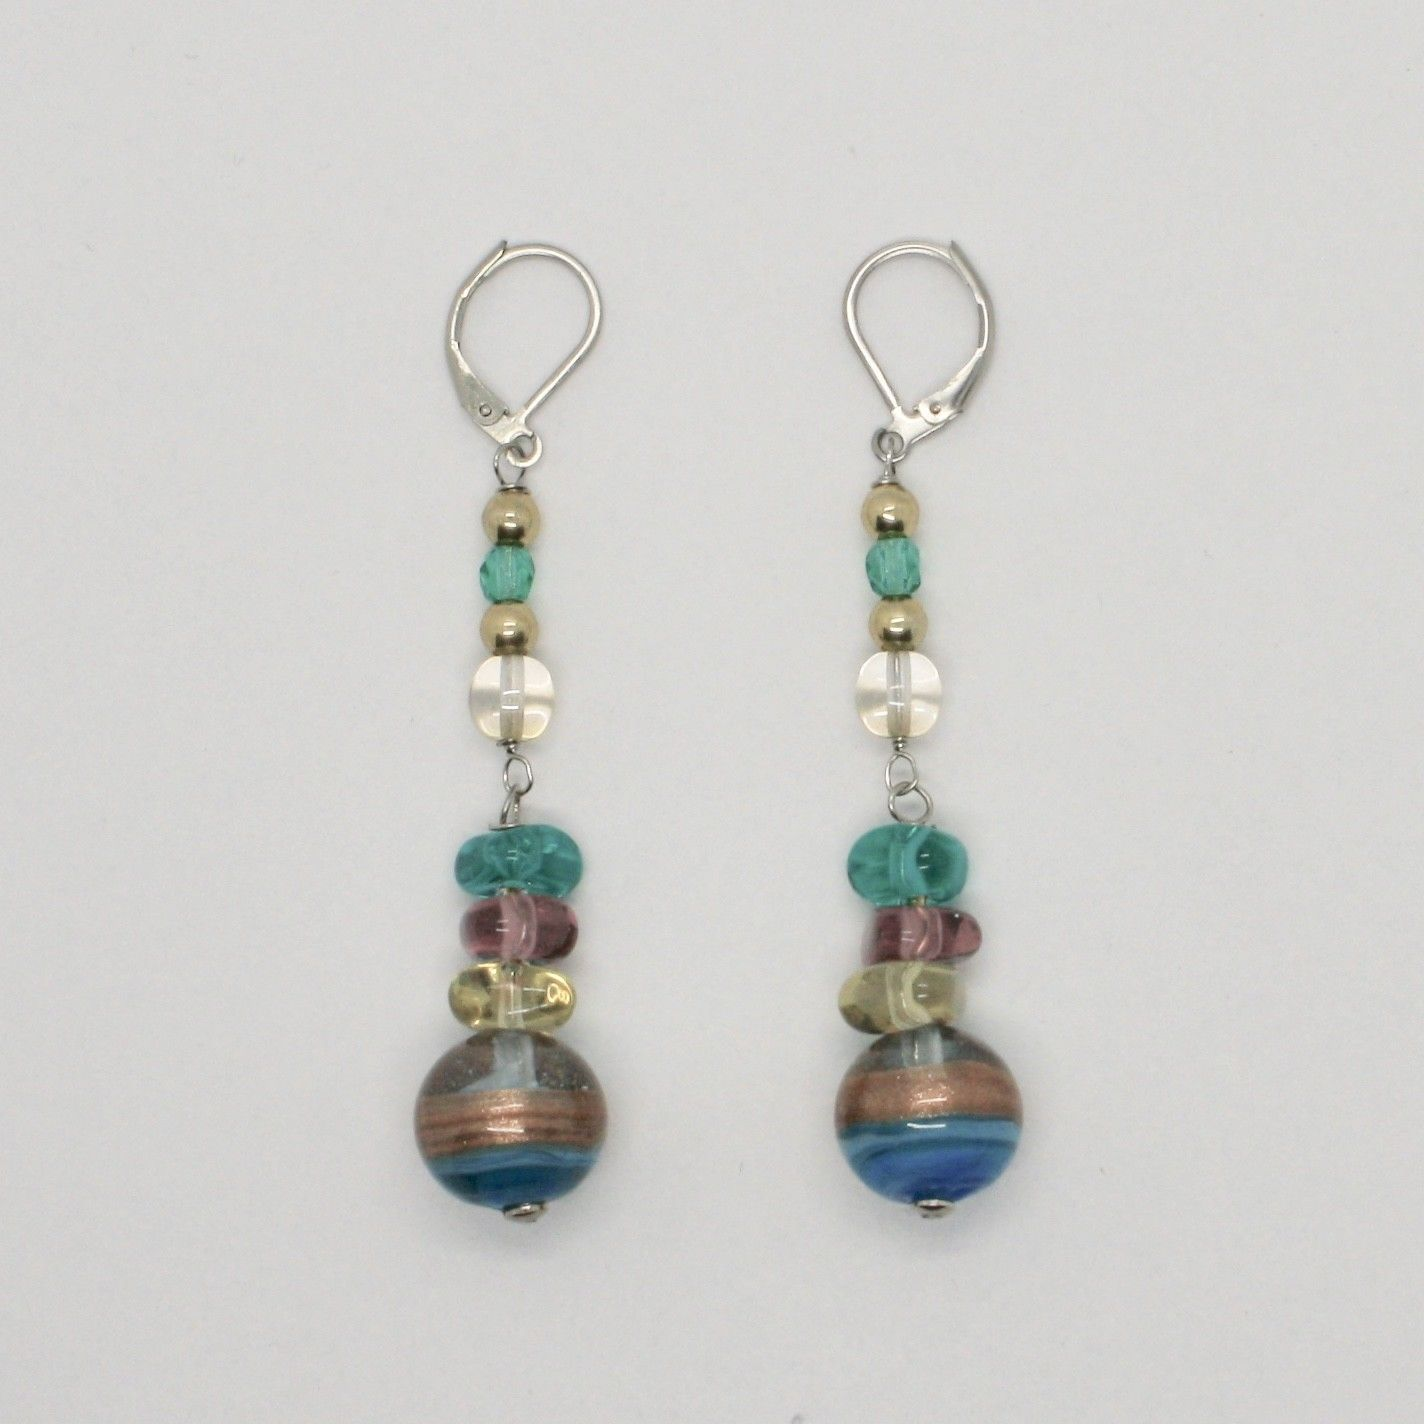 EARRINGS ANTICA MURRINA VENEZIA, MURANO GLASS BLUE PURPLE GREEN OR557A07